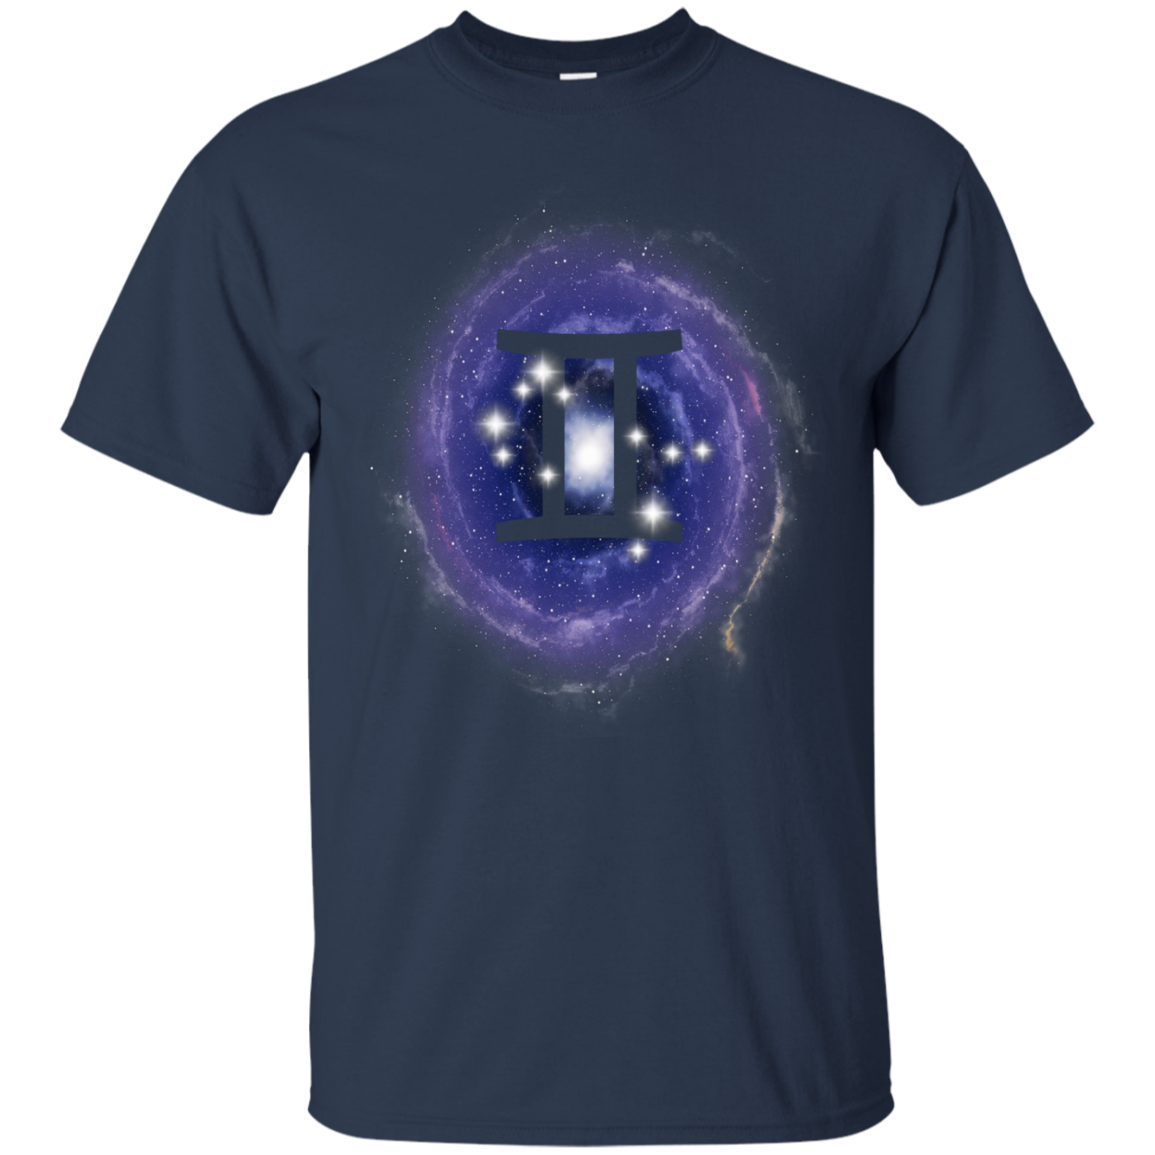 nebula haze in t shirt - photo #17